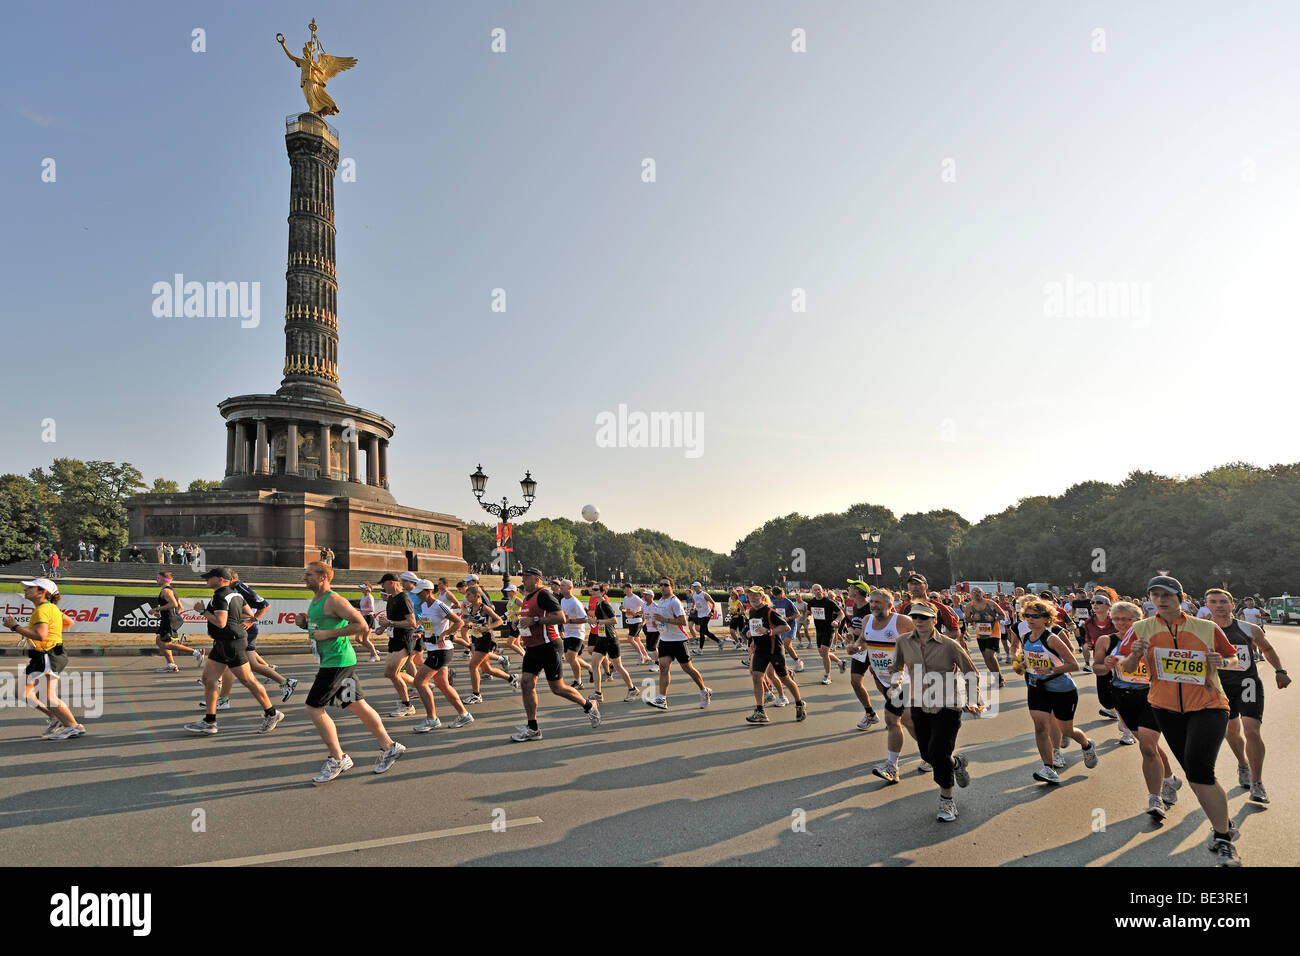 Runners of the Berlin Marathon 2009 at the Grosser Stern roundabout, Berlin, Germany, Europe - Stock Image